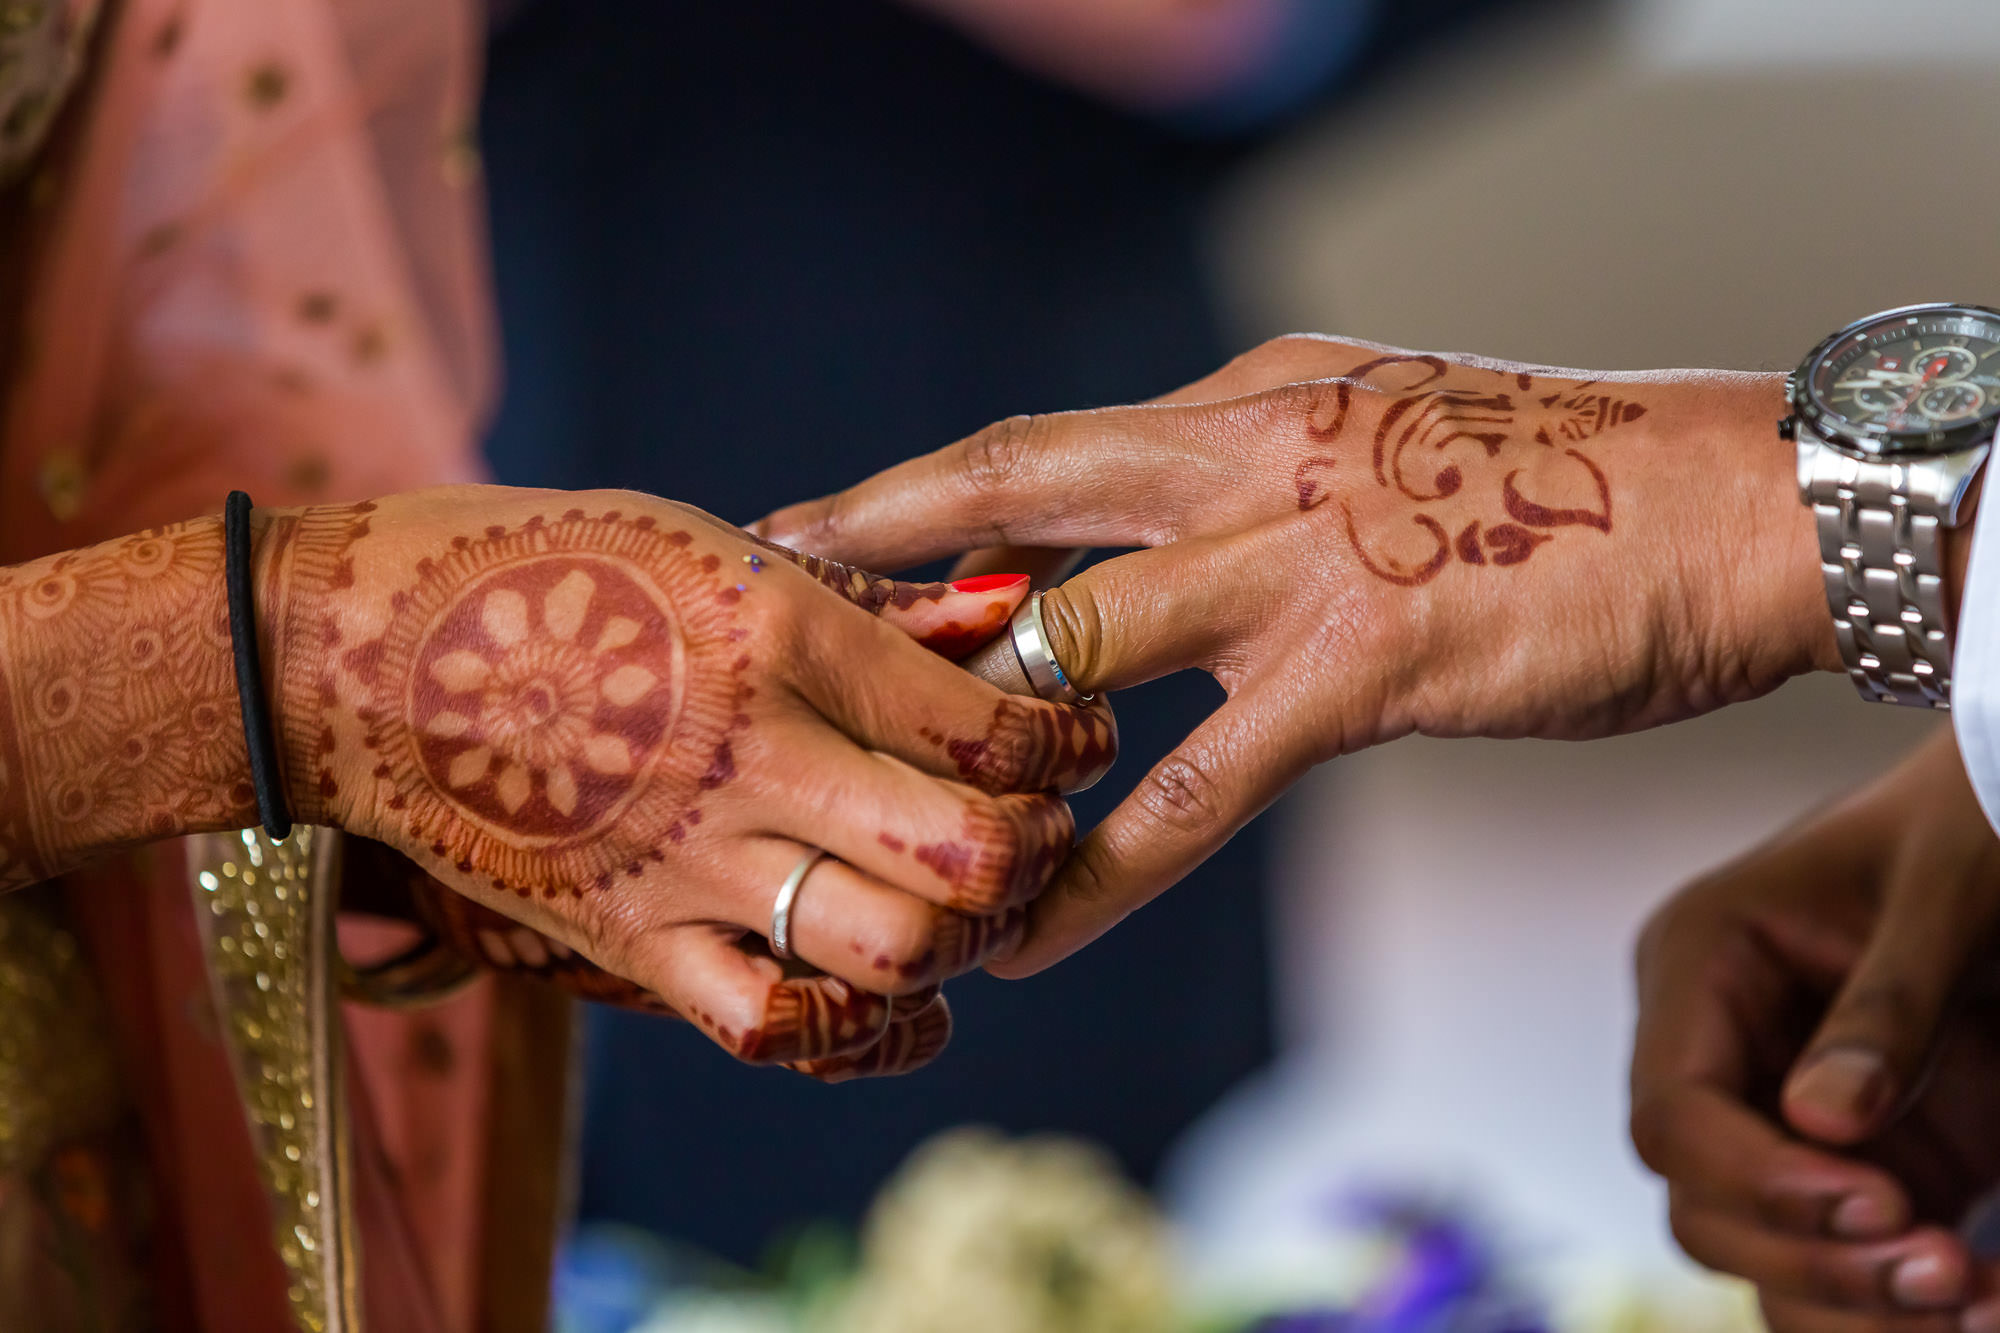 asian-wedding-hindu-tamil-photographer-heythorpe-oxford-0225.jpg